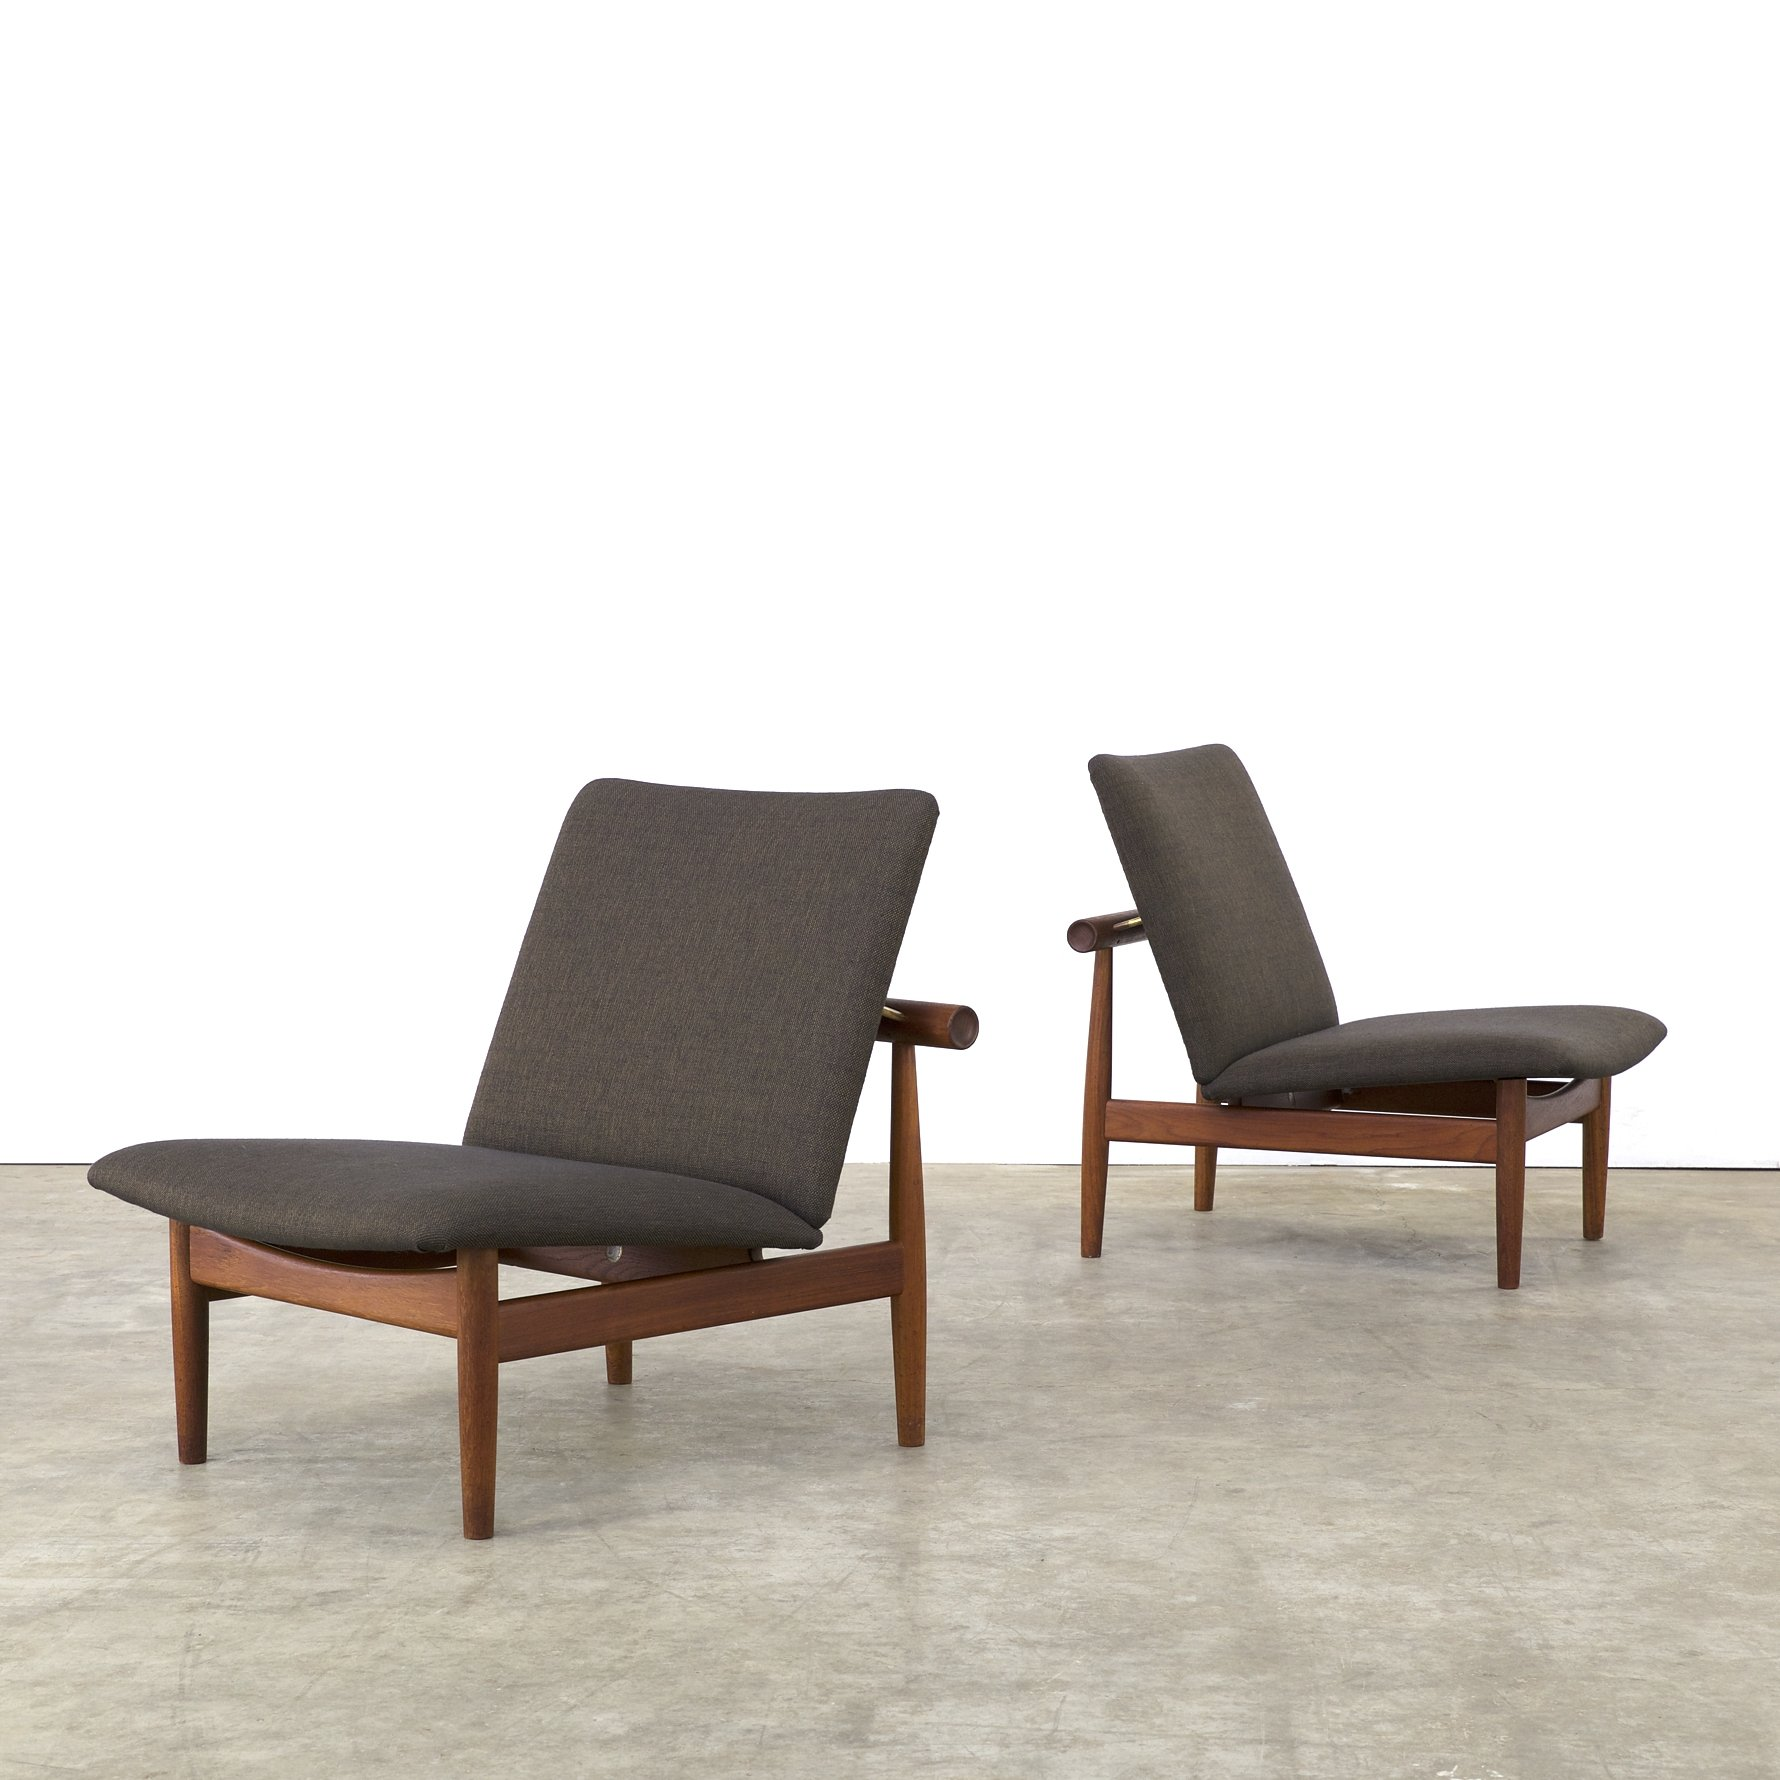 Pair Of Model 137 / Japanese Model Lounge Chairs By Finn Juhl For France U0026  Son, 1950s